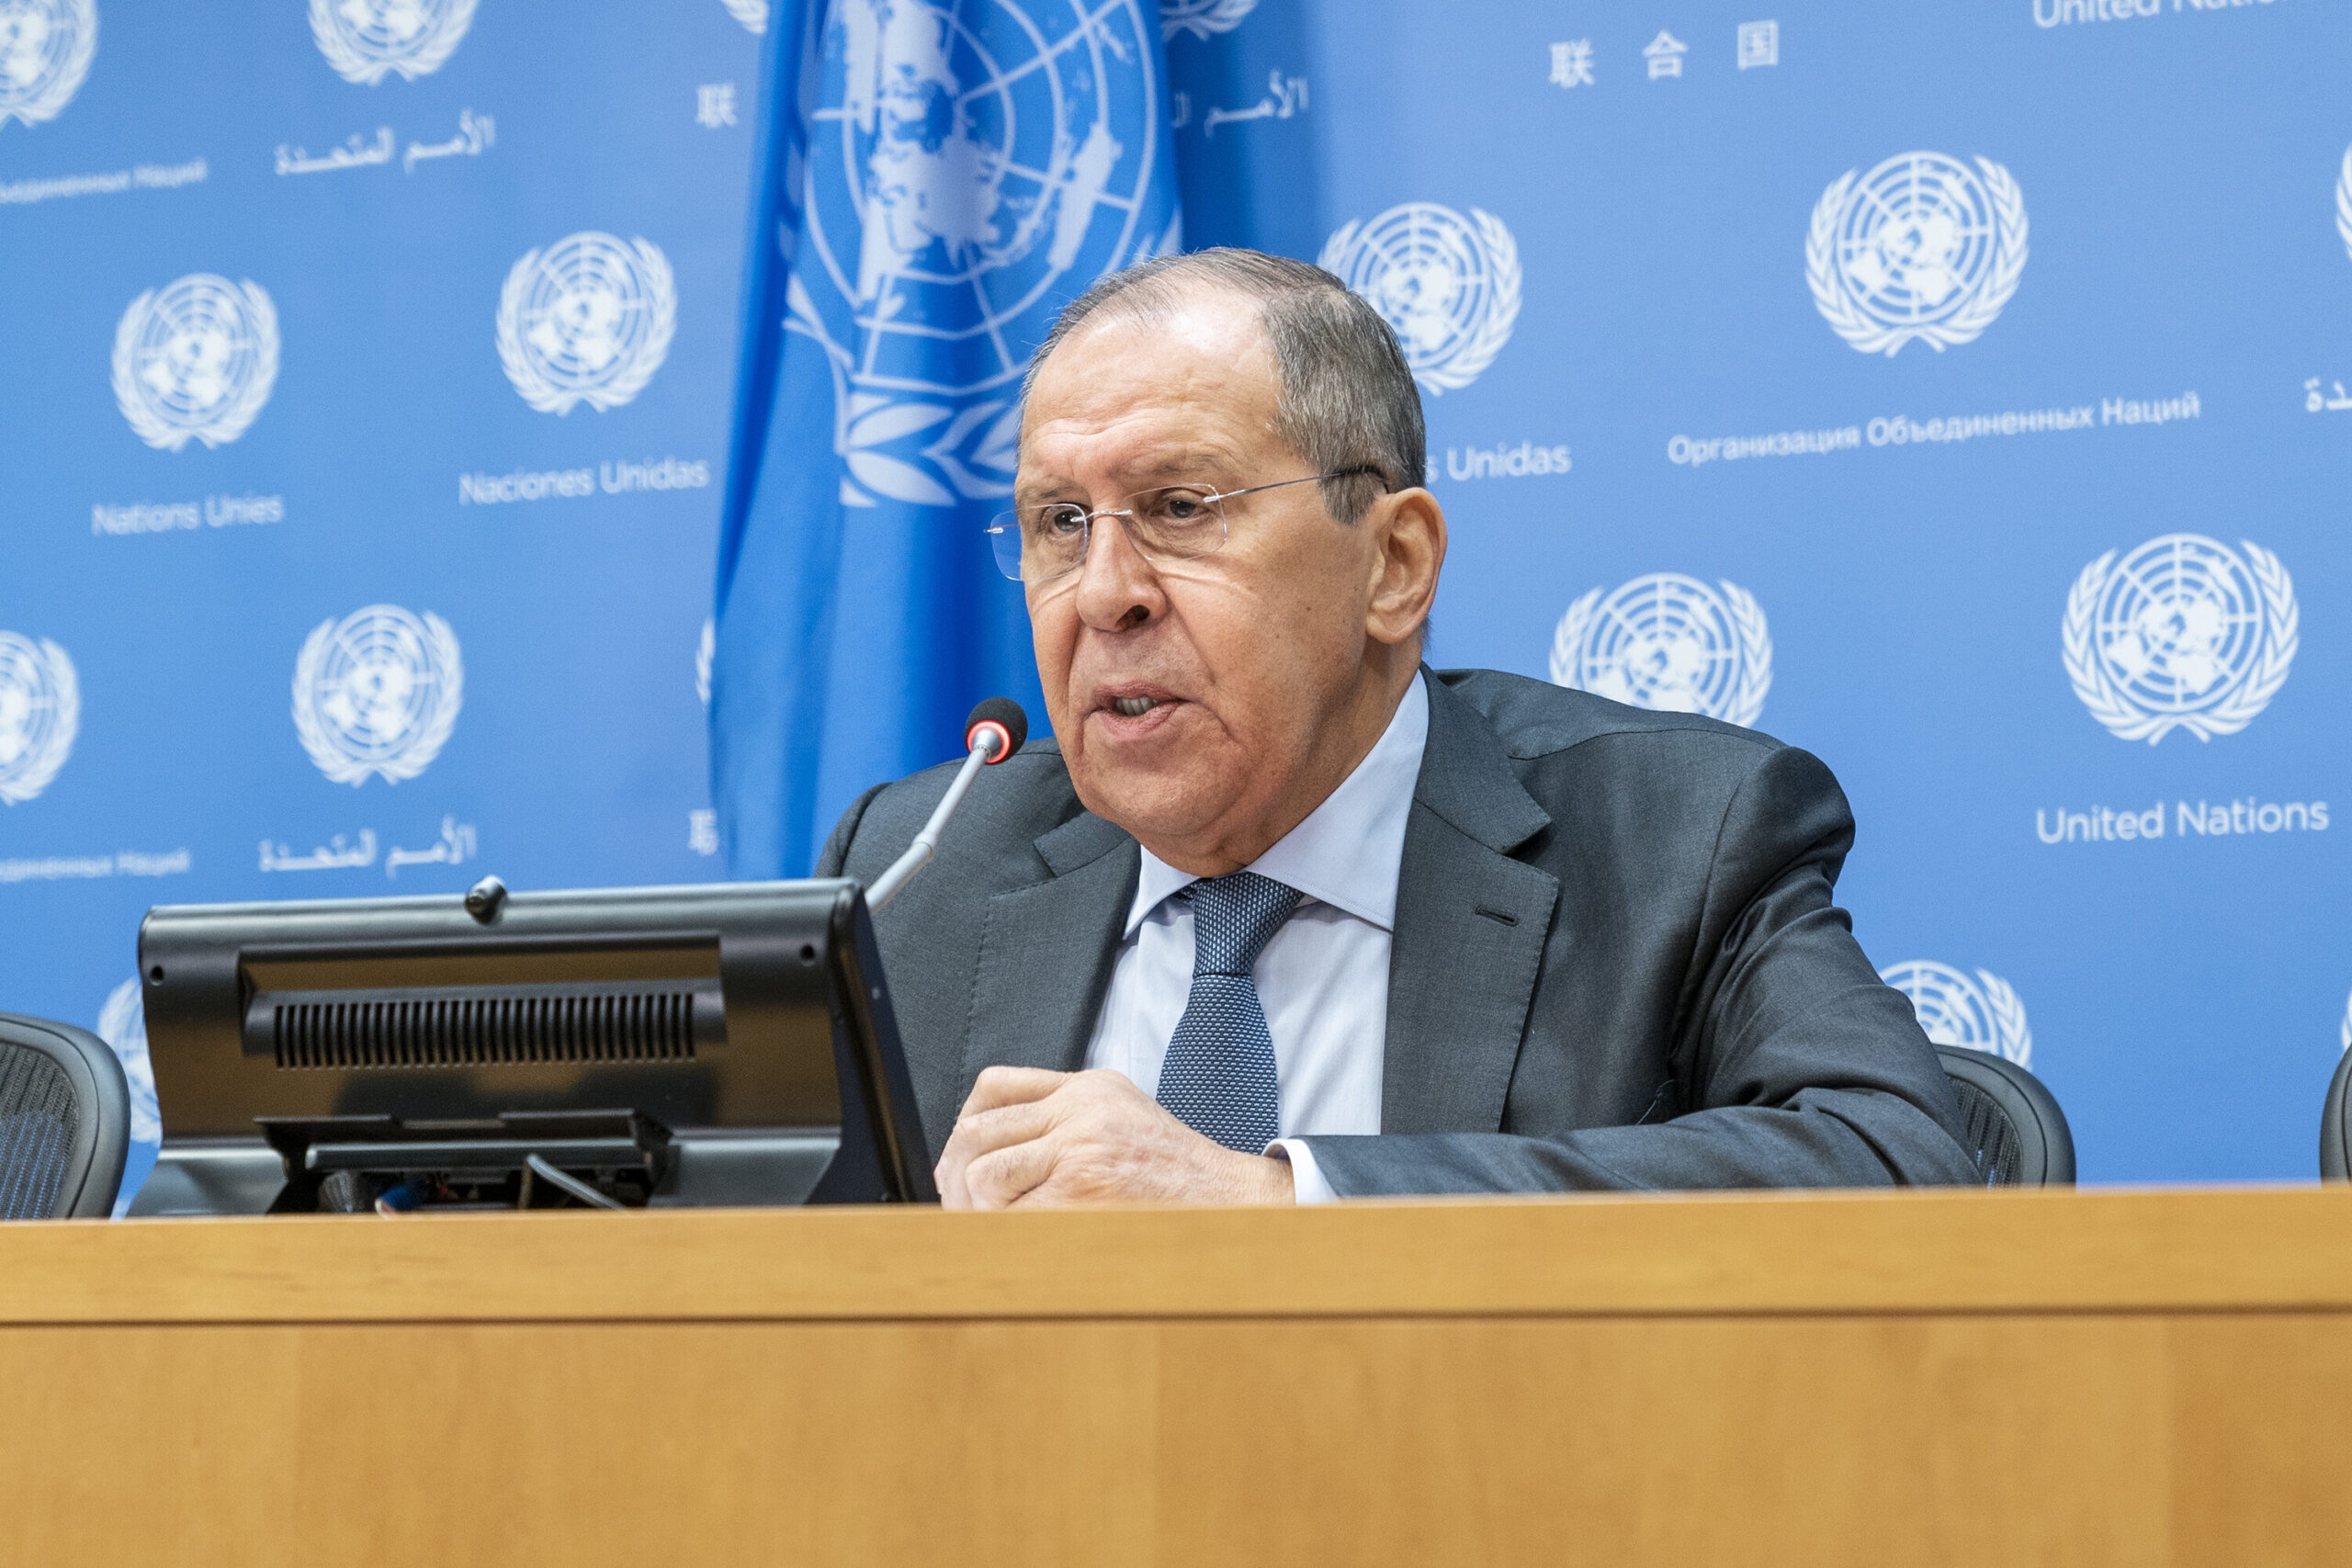 <i>Lev Radin/Pacific Press/LightRocket/Getty Images</i><br/>Press conference by Minister for Foreign Affairs of the Russian Federation Sergey Lavrov at UN Headquarters during United Nations High week.